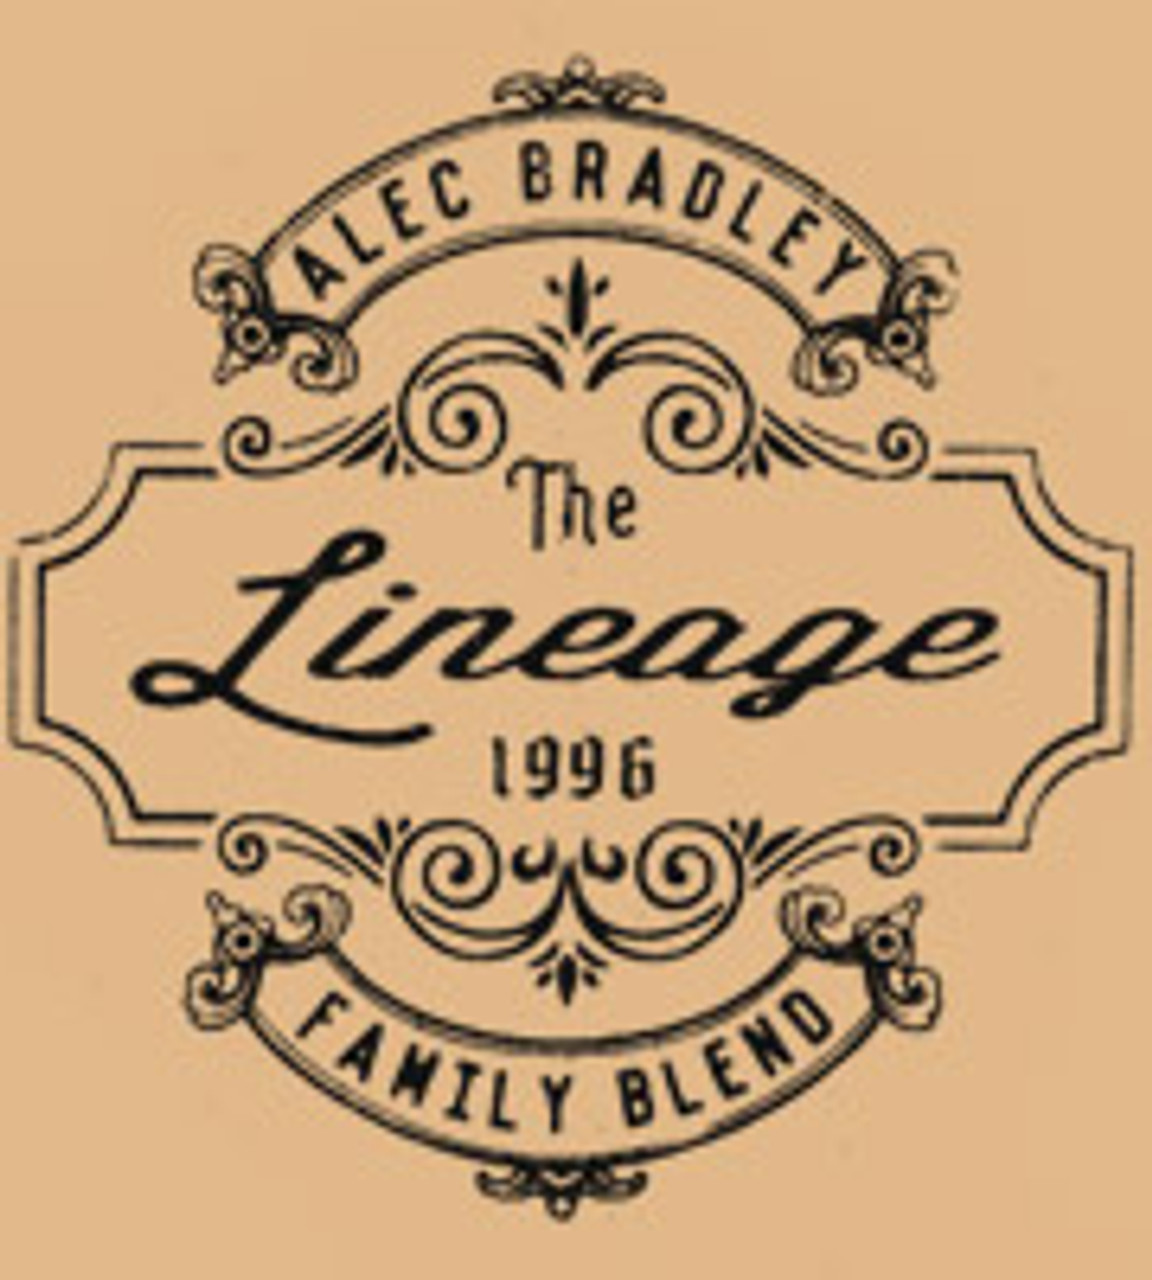 Alec Bradley Family Blend The Lineage Gordo Cigars - 6 x 60 (Box of 20)